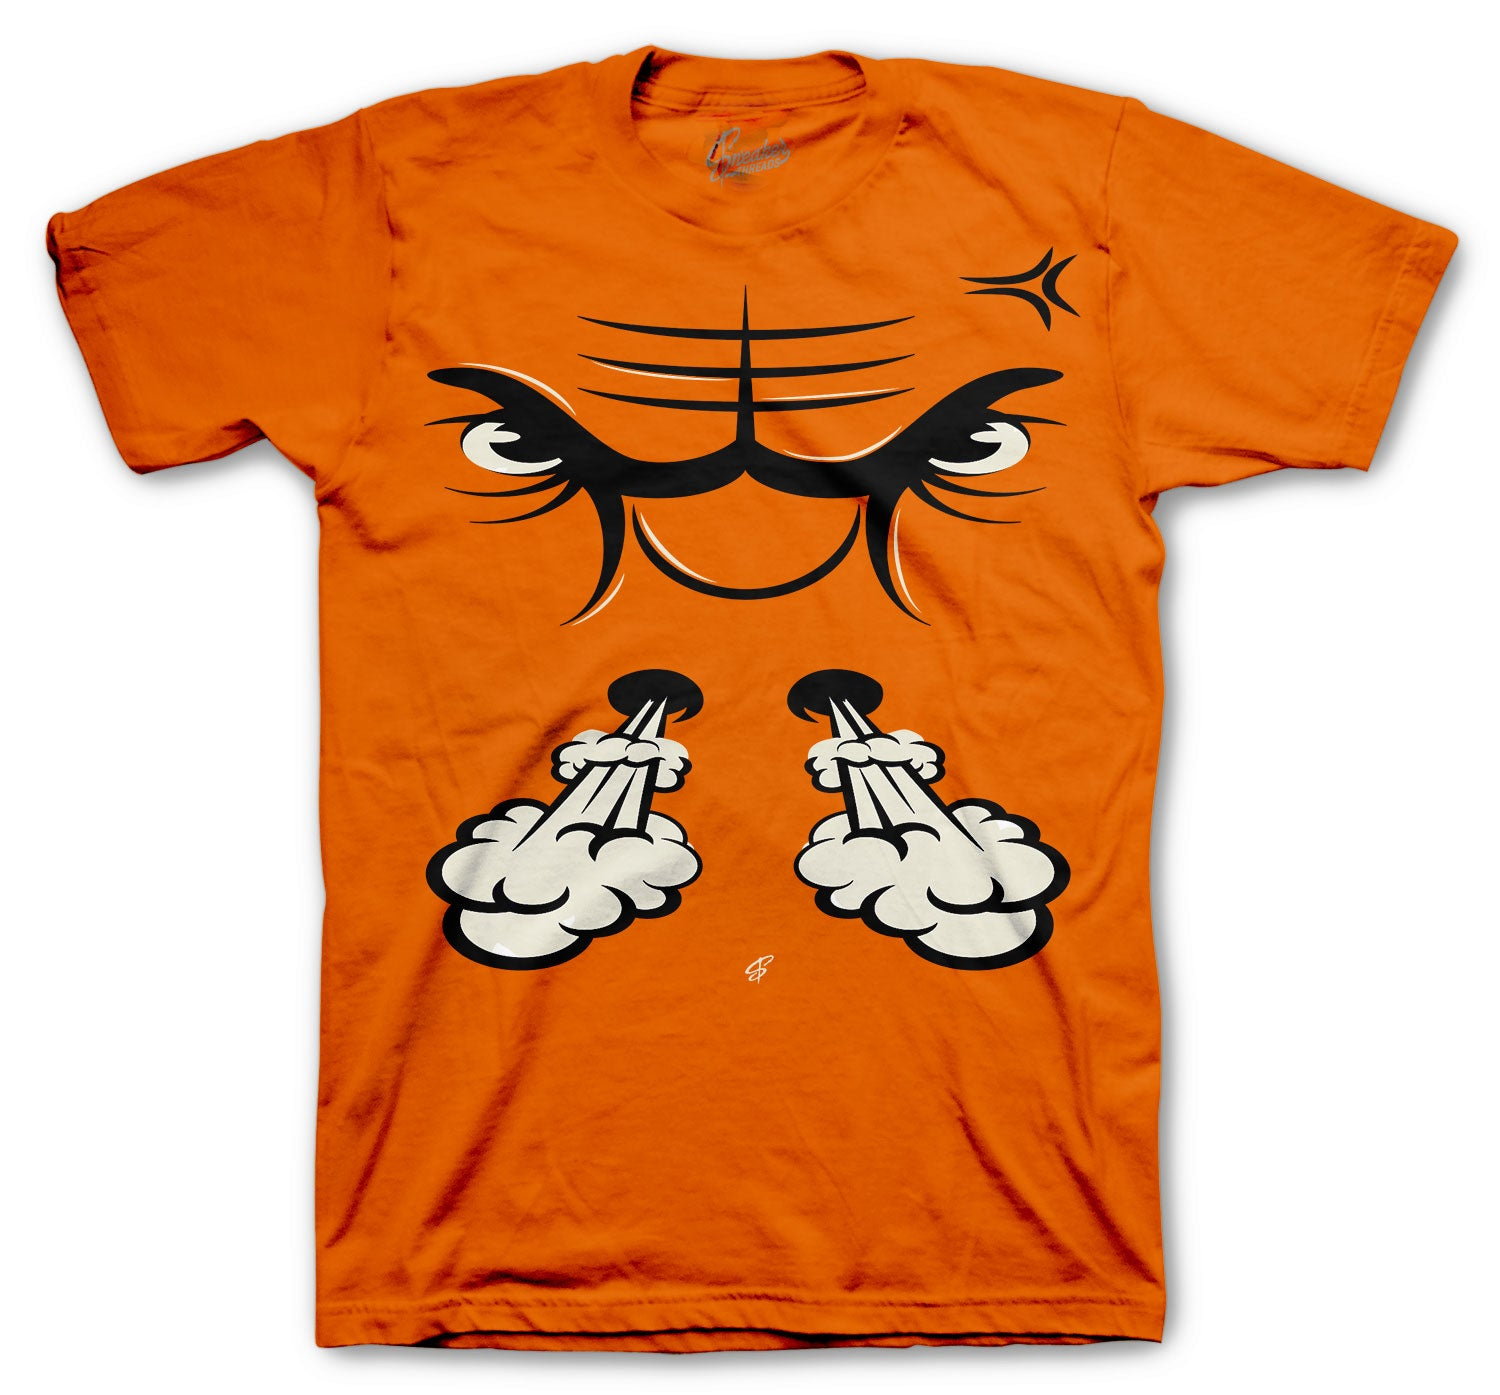 Jordan Starfish Shirt - Raging Face - Orange